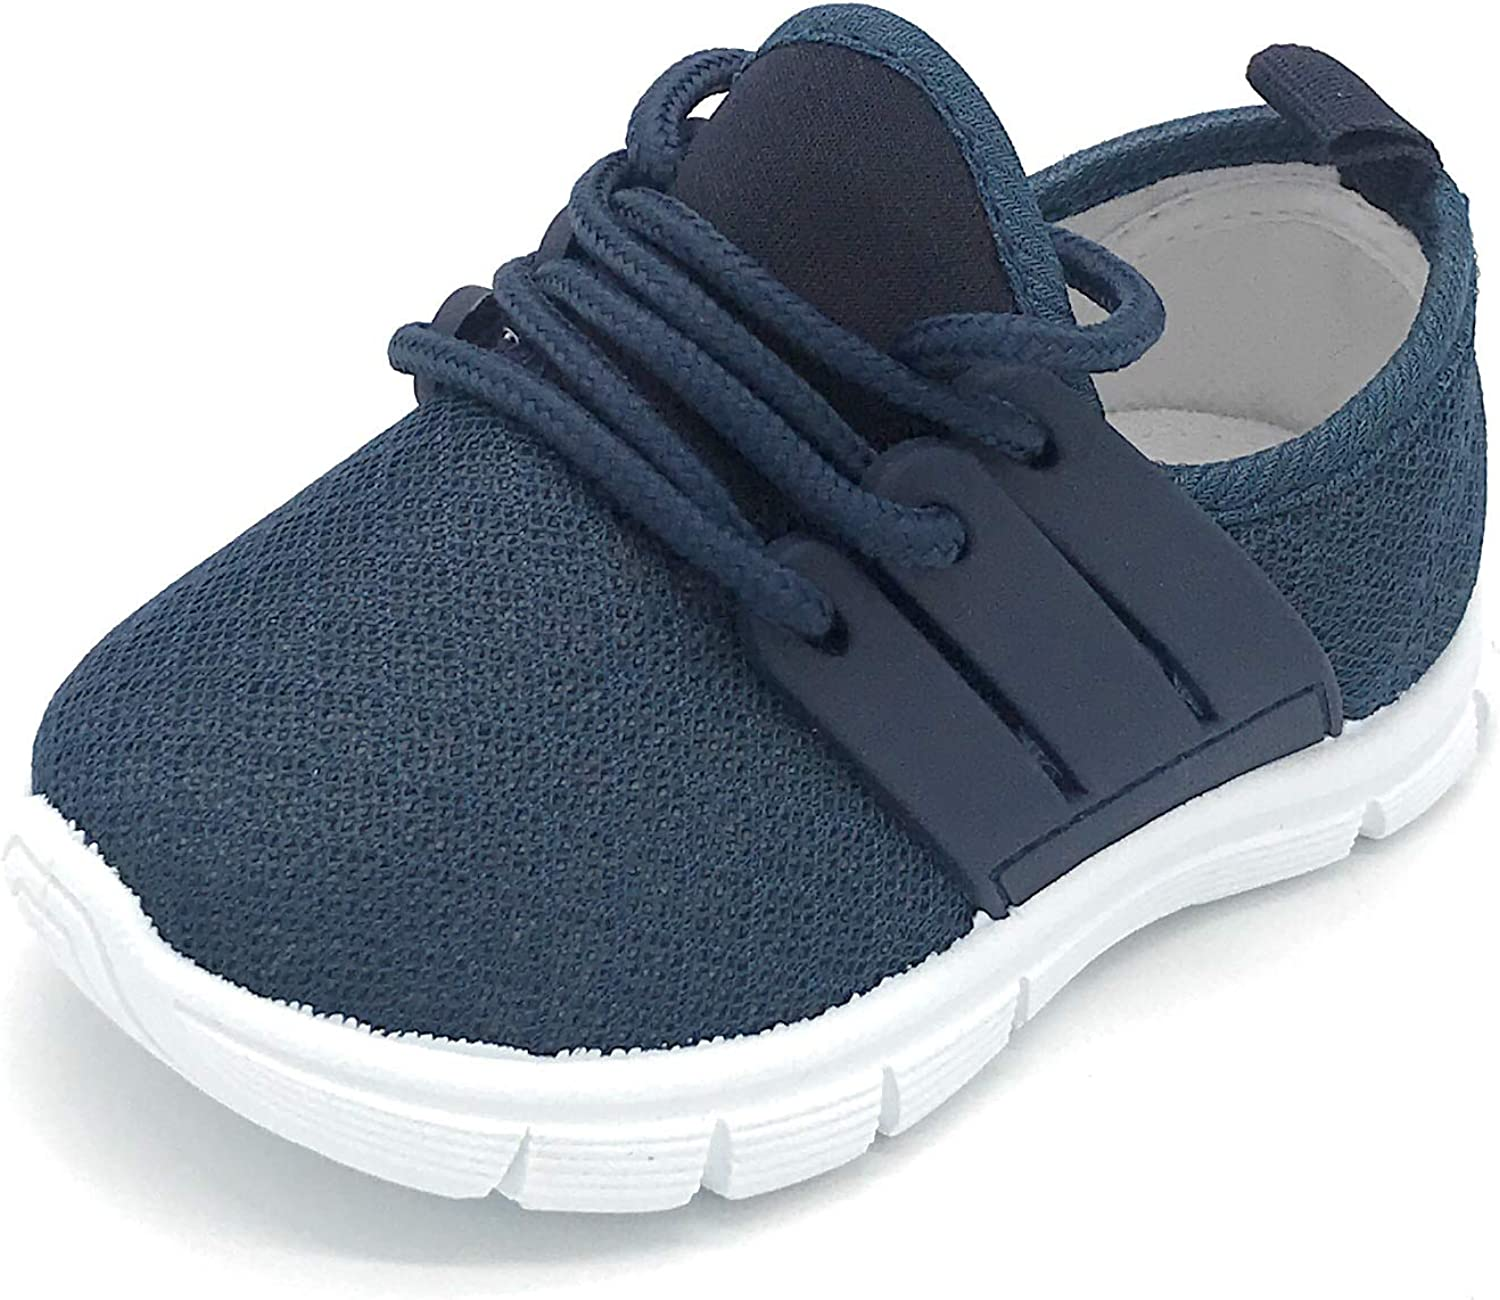 Blue Berry Baby's Boy's Girl's Casual Light Weight Breathable Strap Sneakers Running Shoe